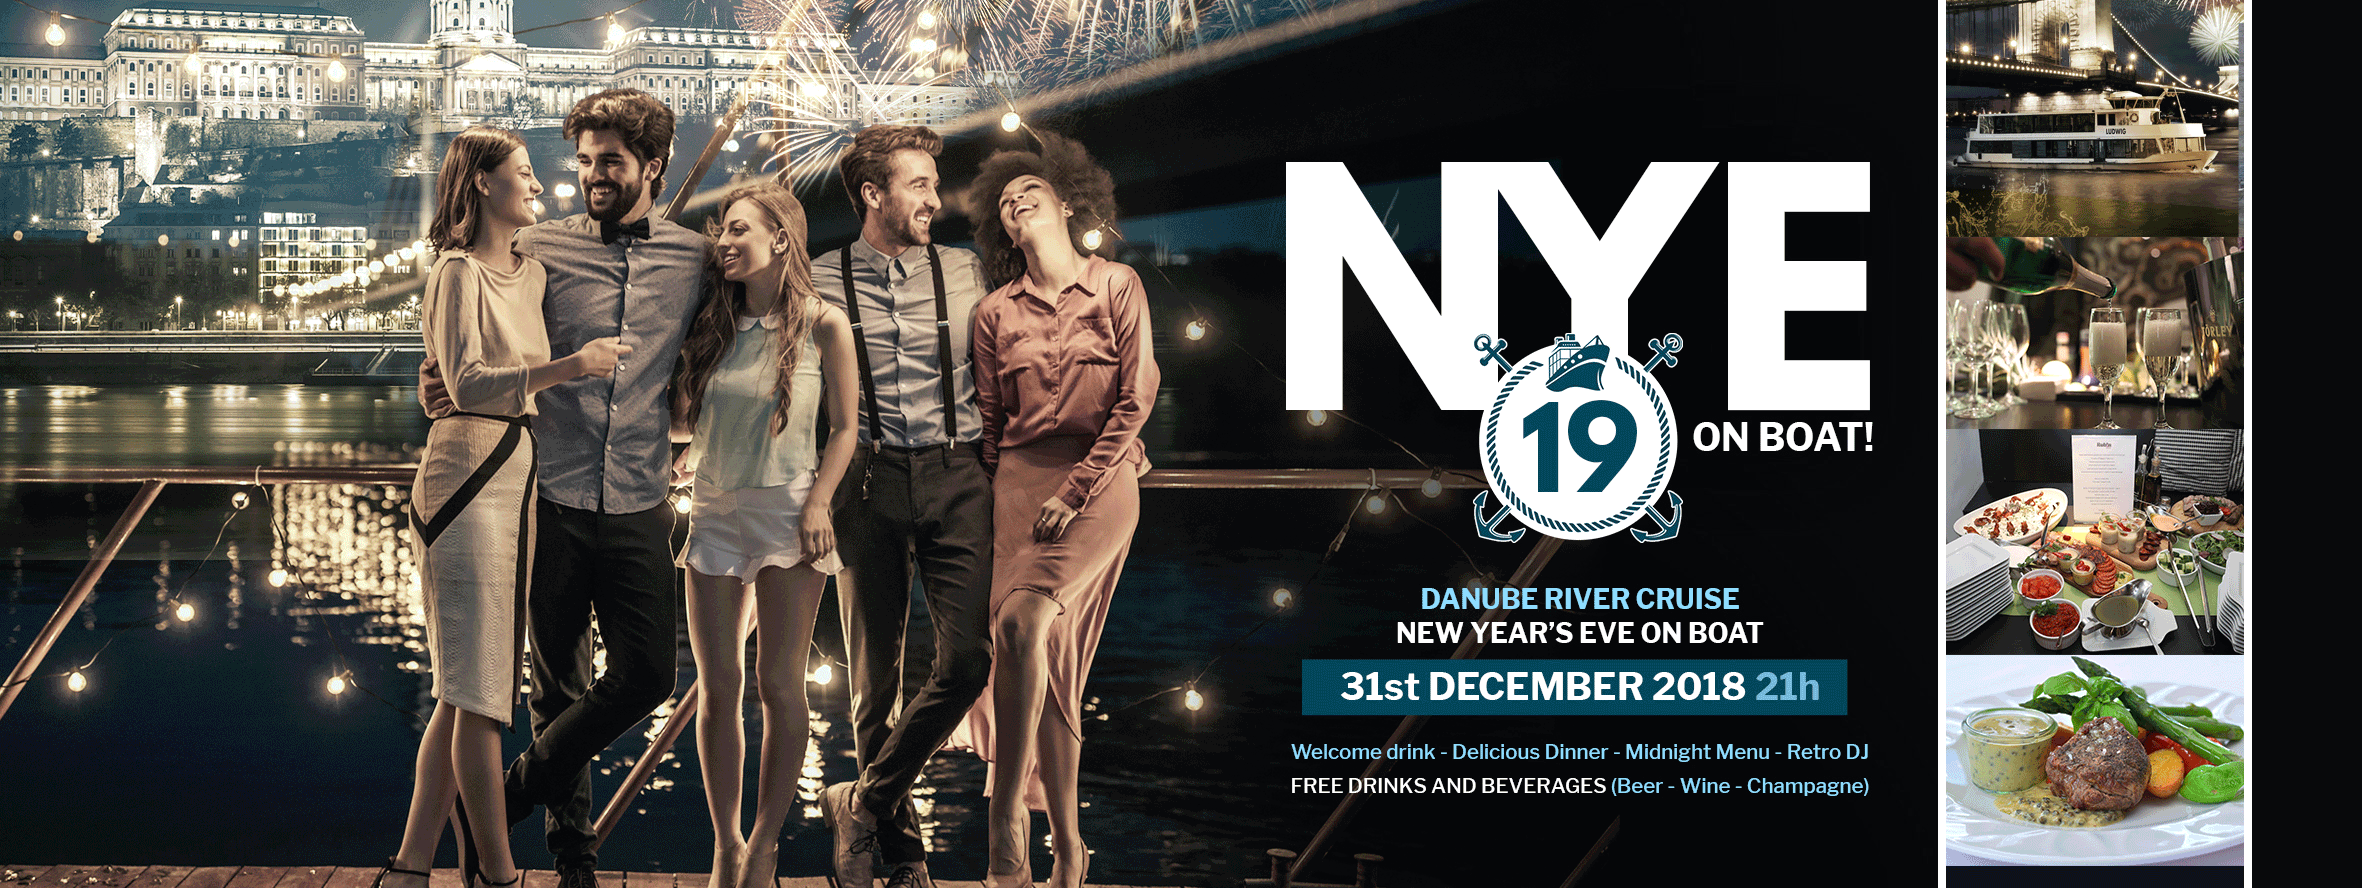 budapest events new year